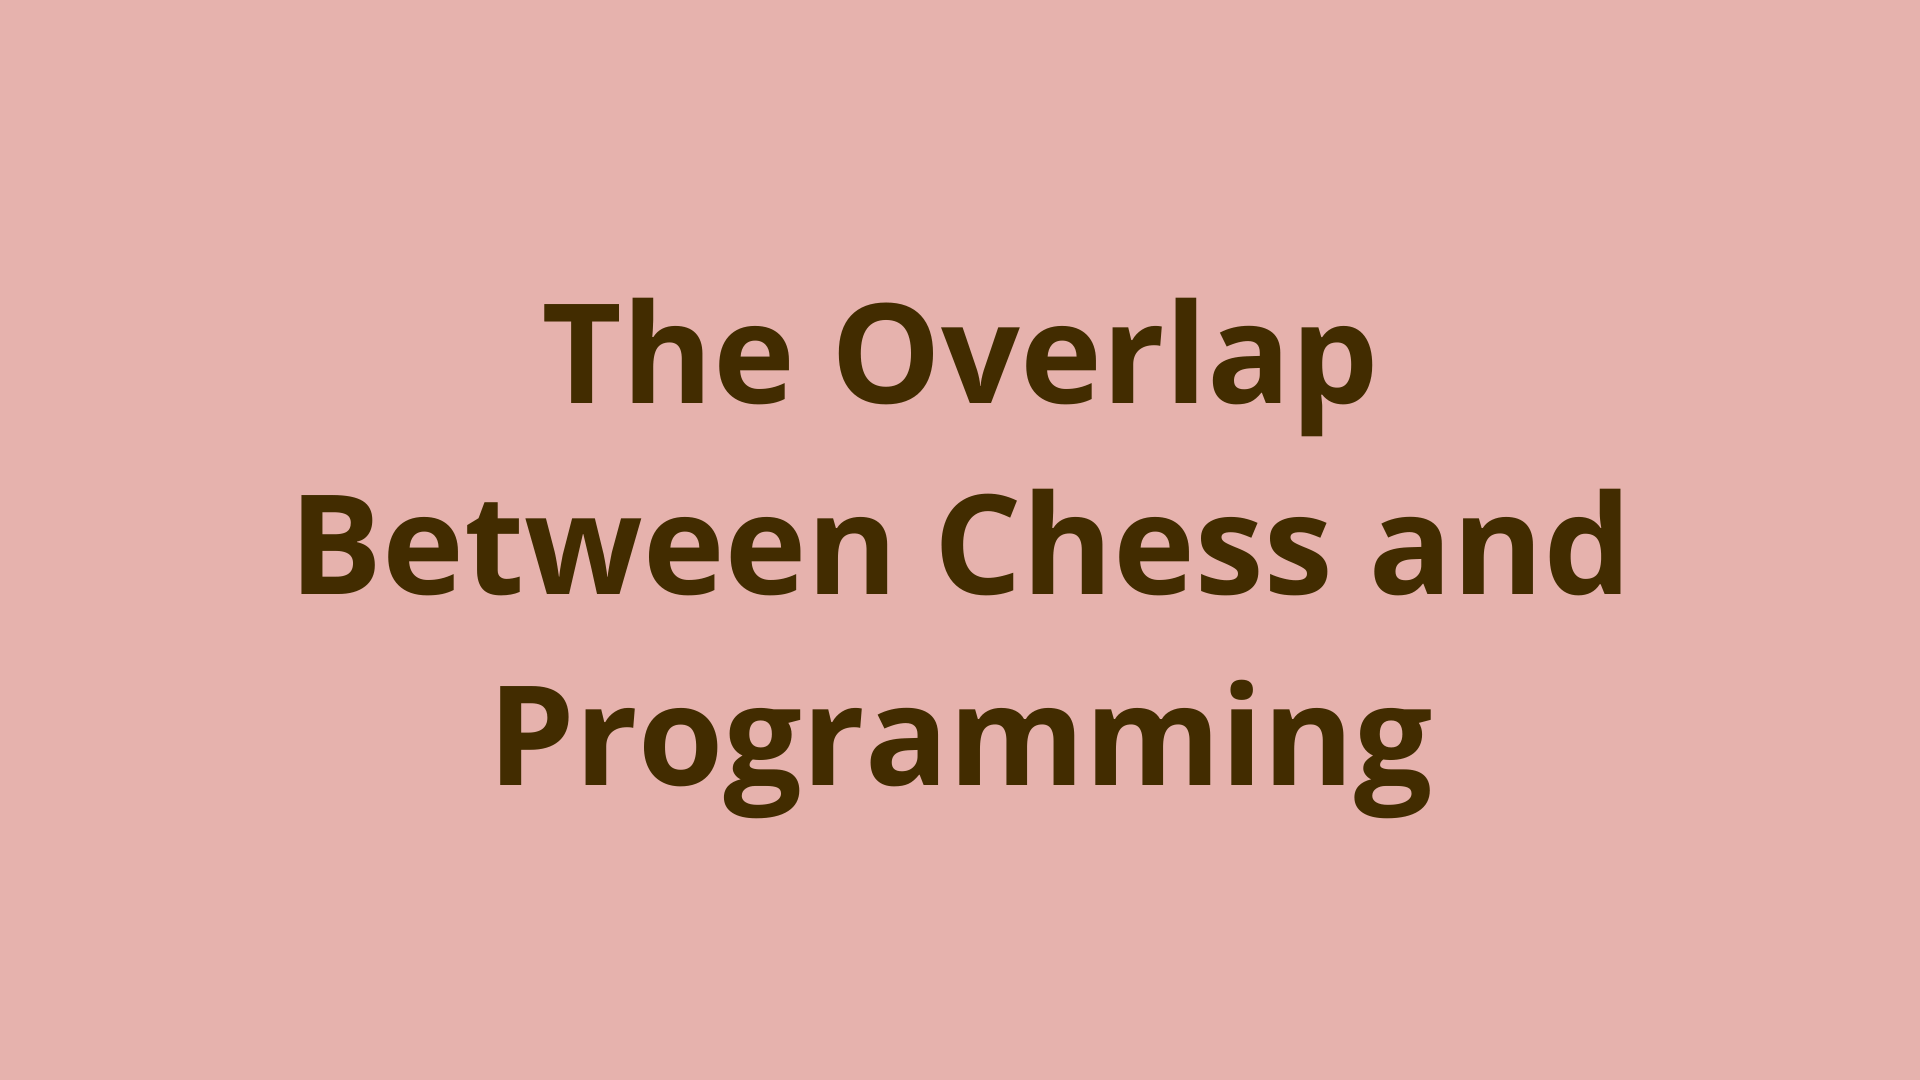 Image of The overlap between chess and programming is real